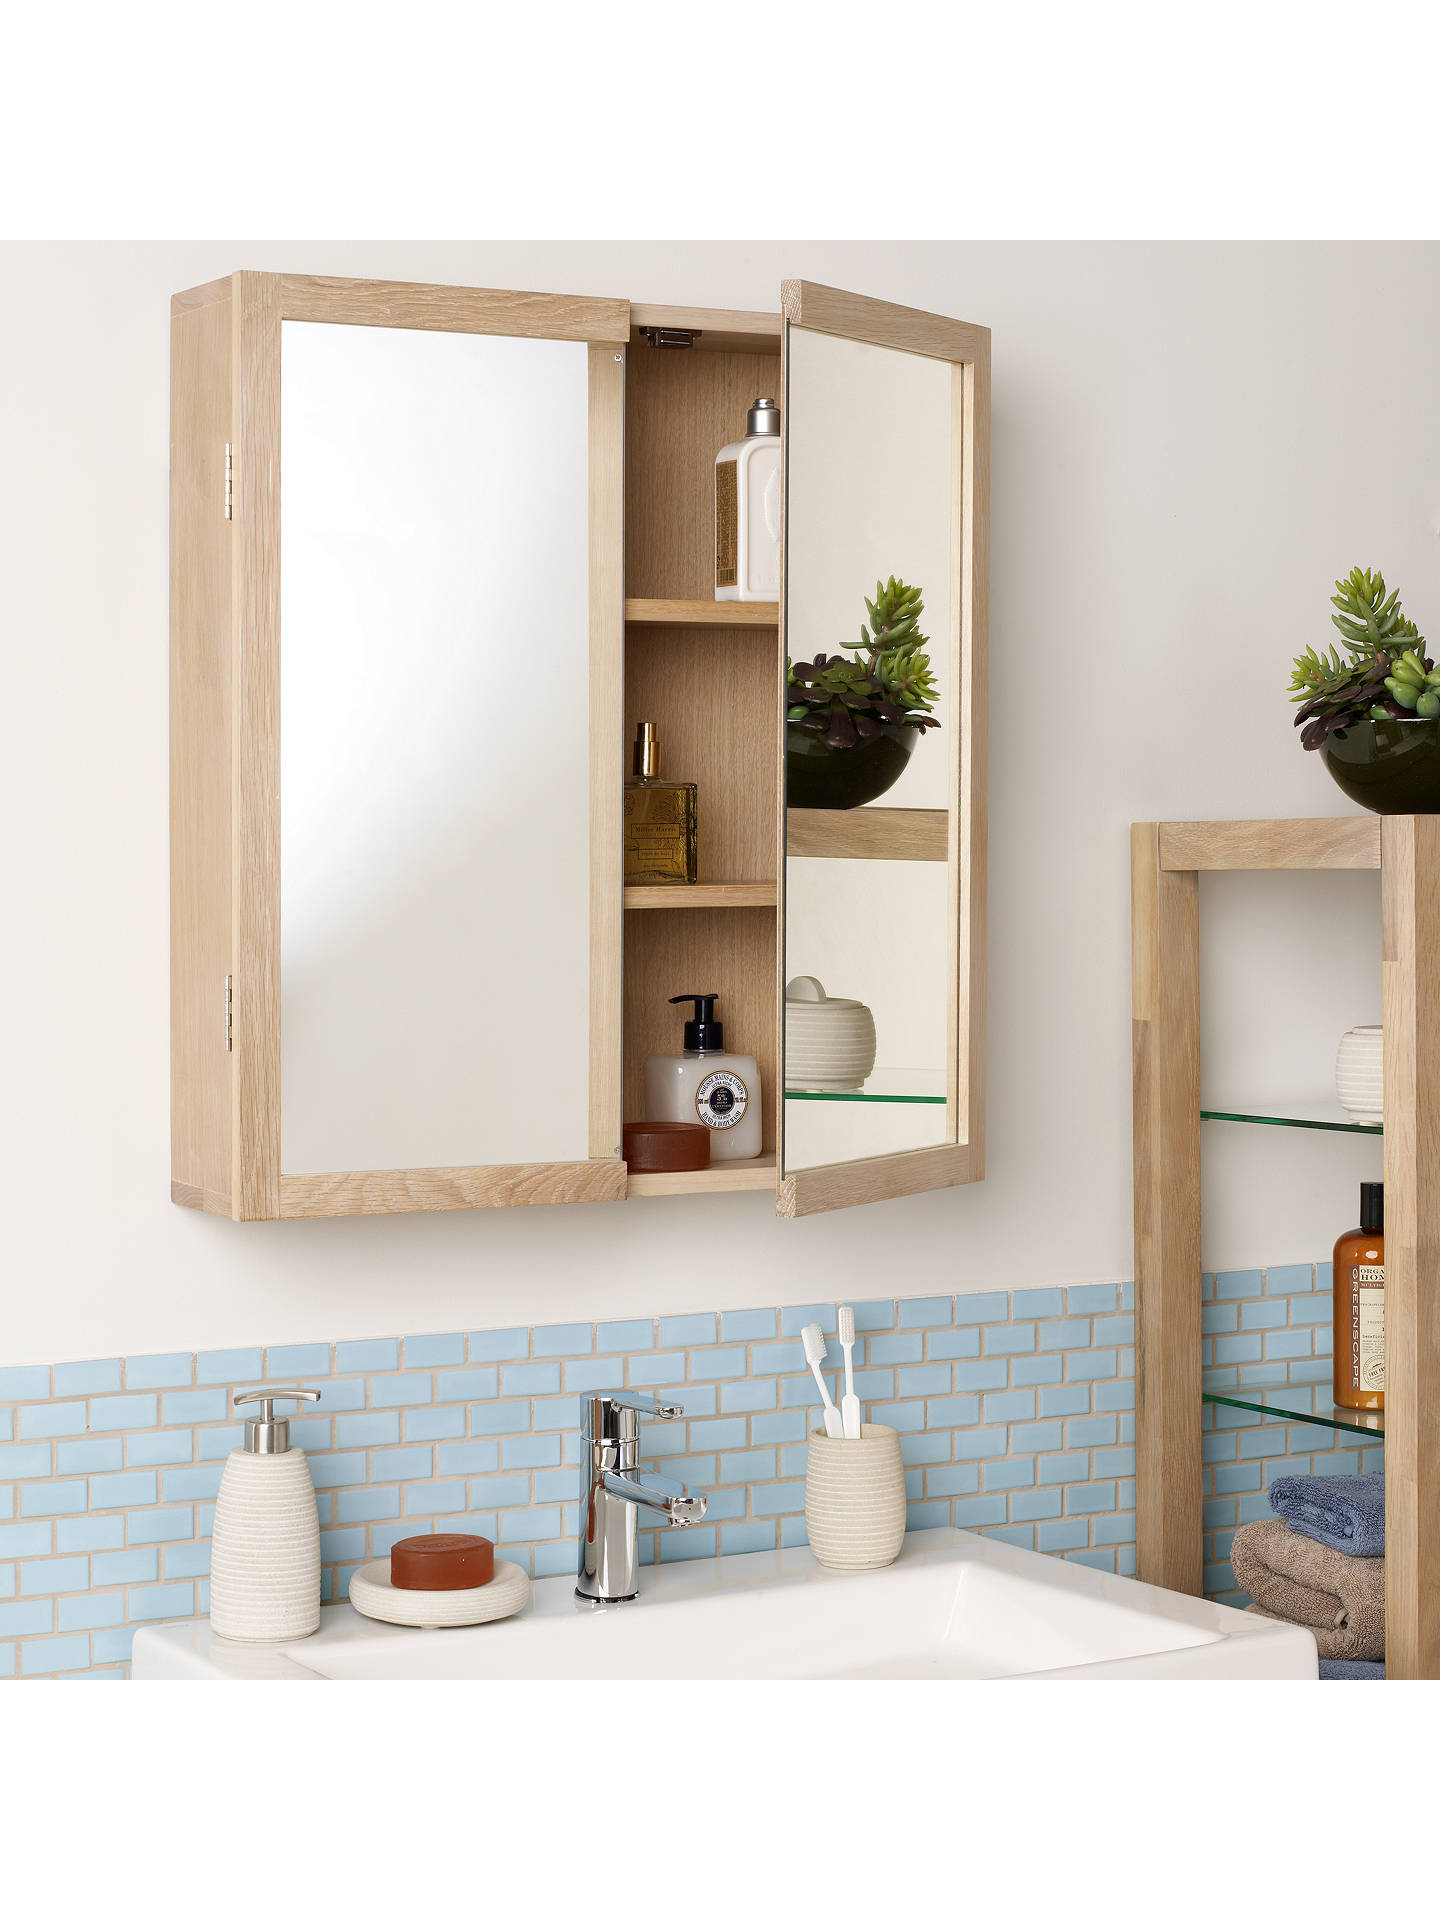 John Lewis Heywood Double Mirrored Bathroom Cabinet at ...